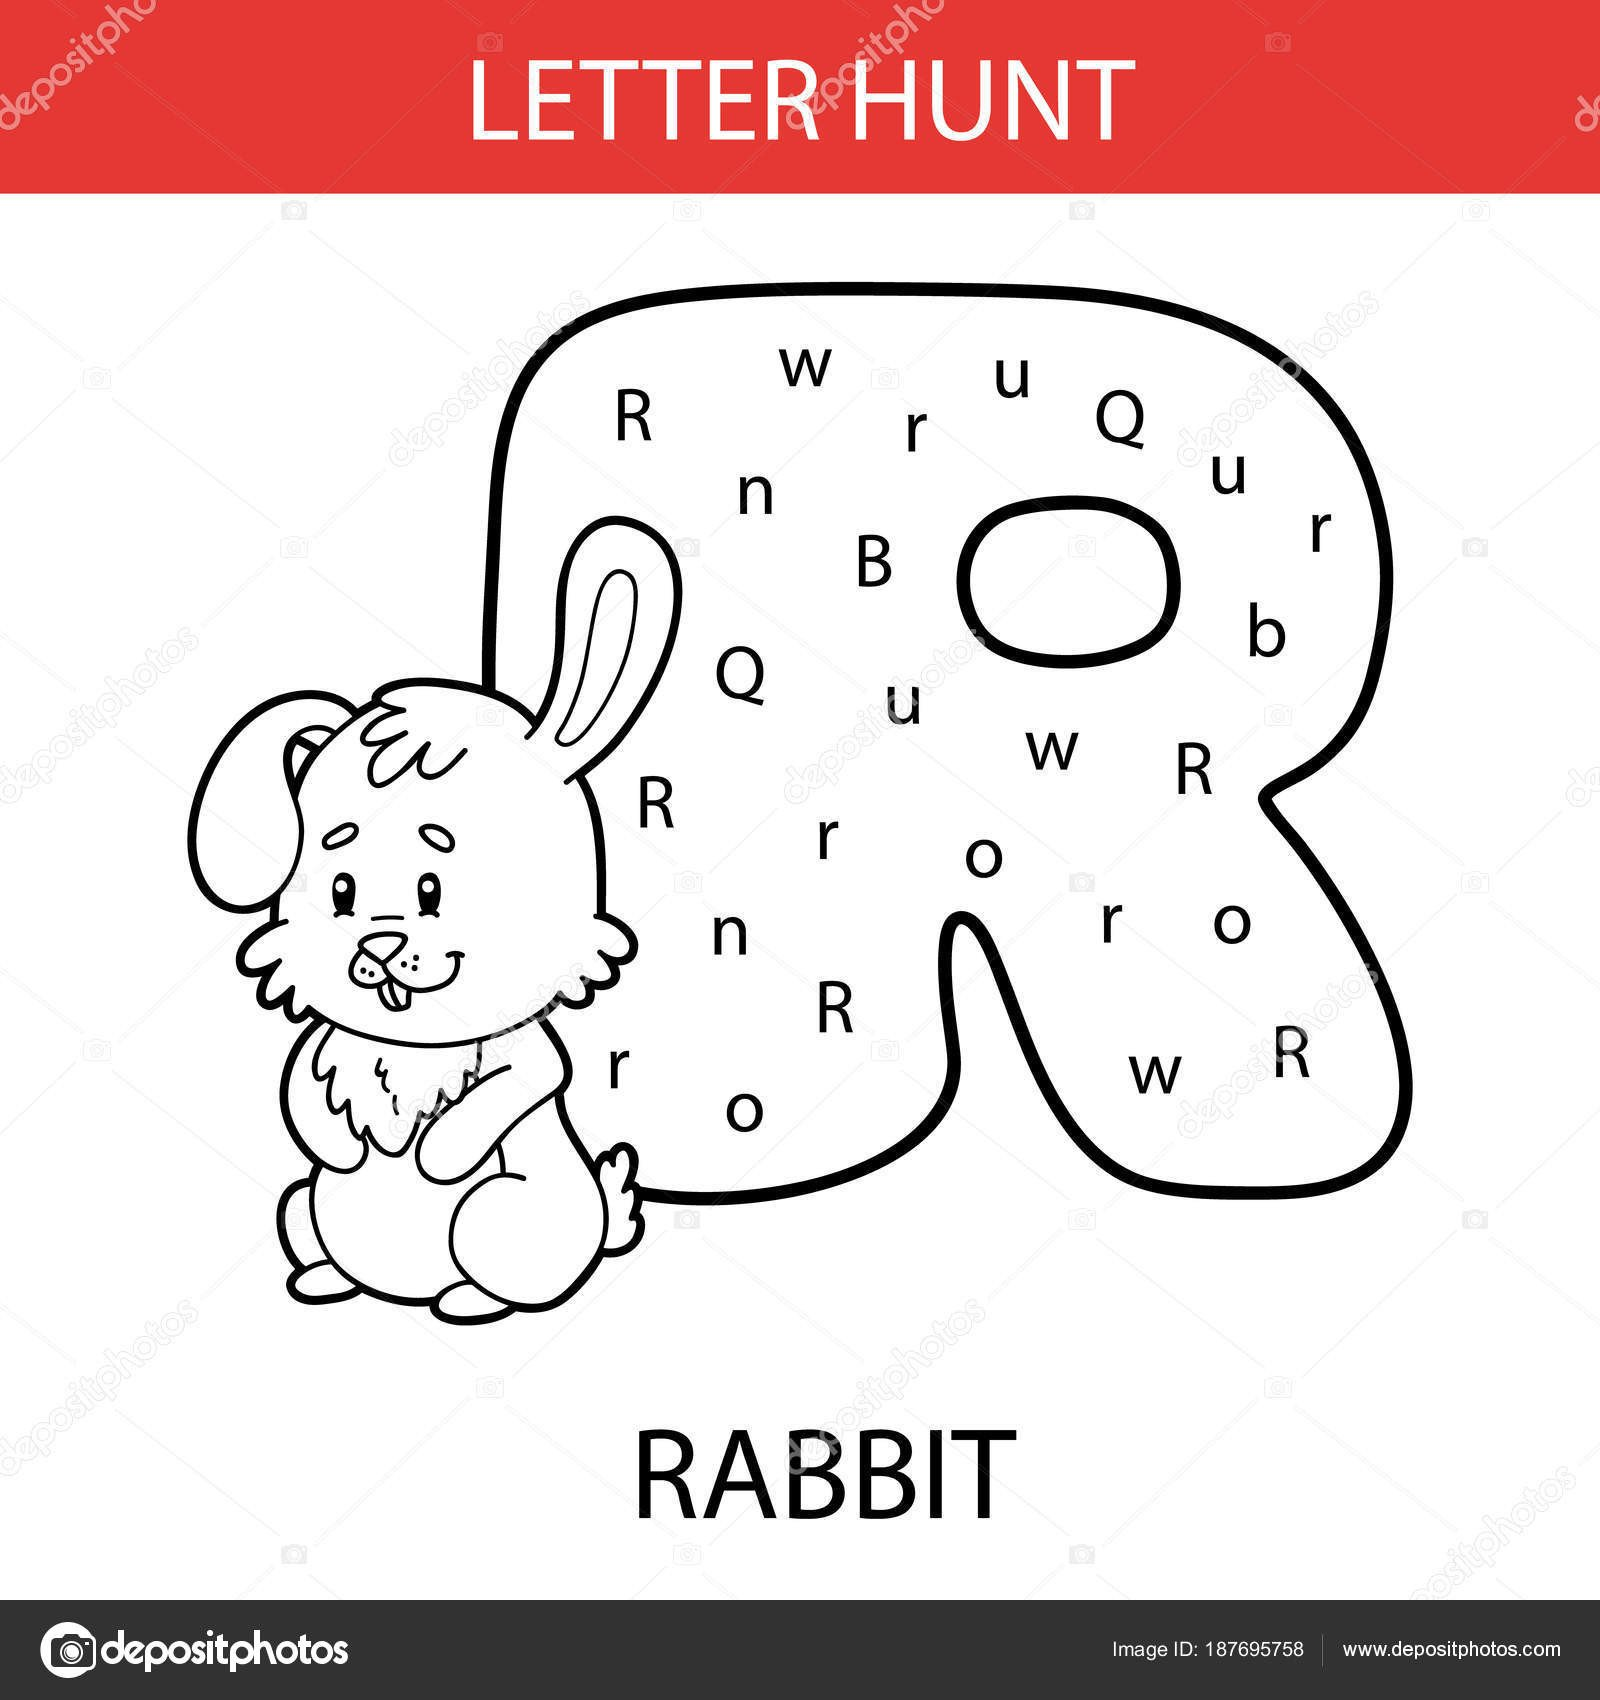 Letter Hunt Worksheet Vector Illustration Of Printable Kids Alphabet Worksheets Educational Game Letter Hunt for Preschool Children Practice with Cartoon Character